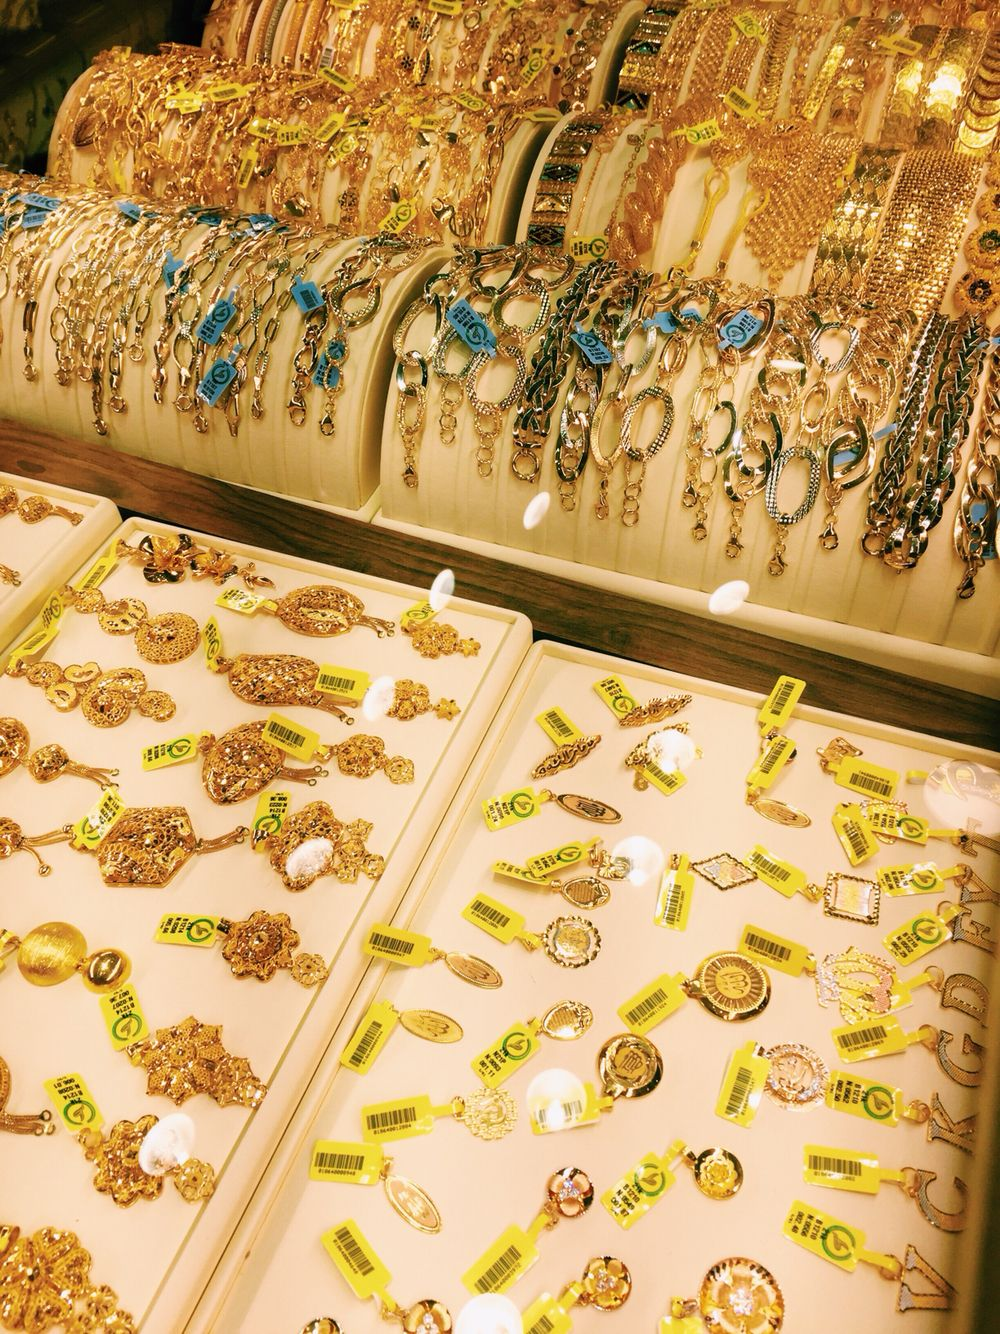 33+ Old gold jewelry for sale viral